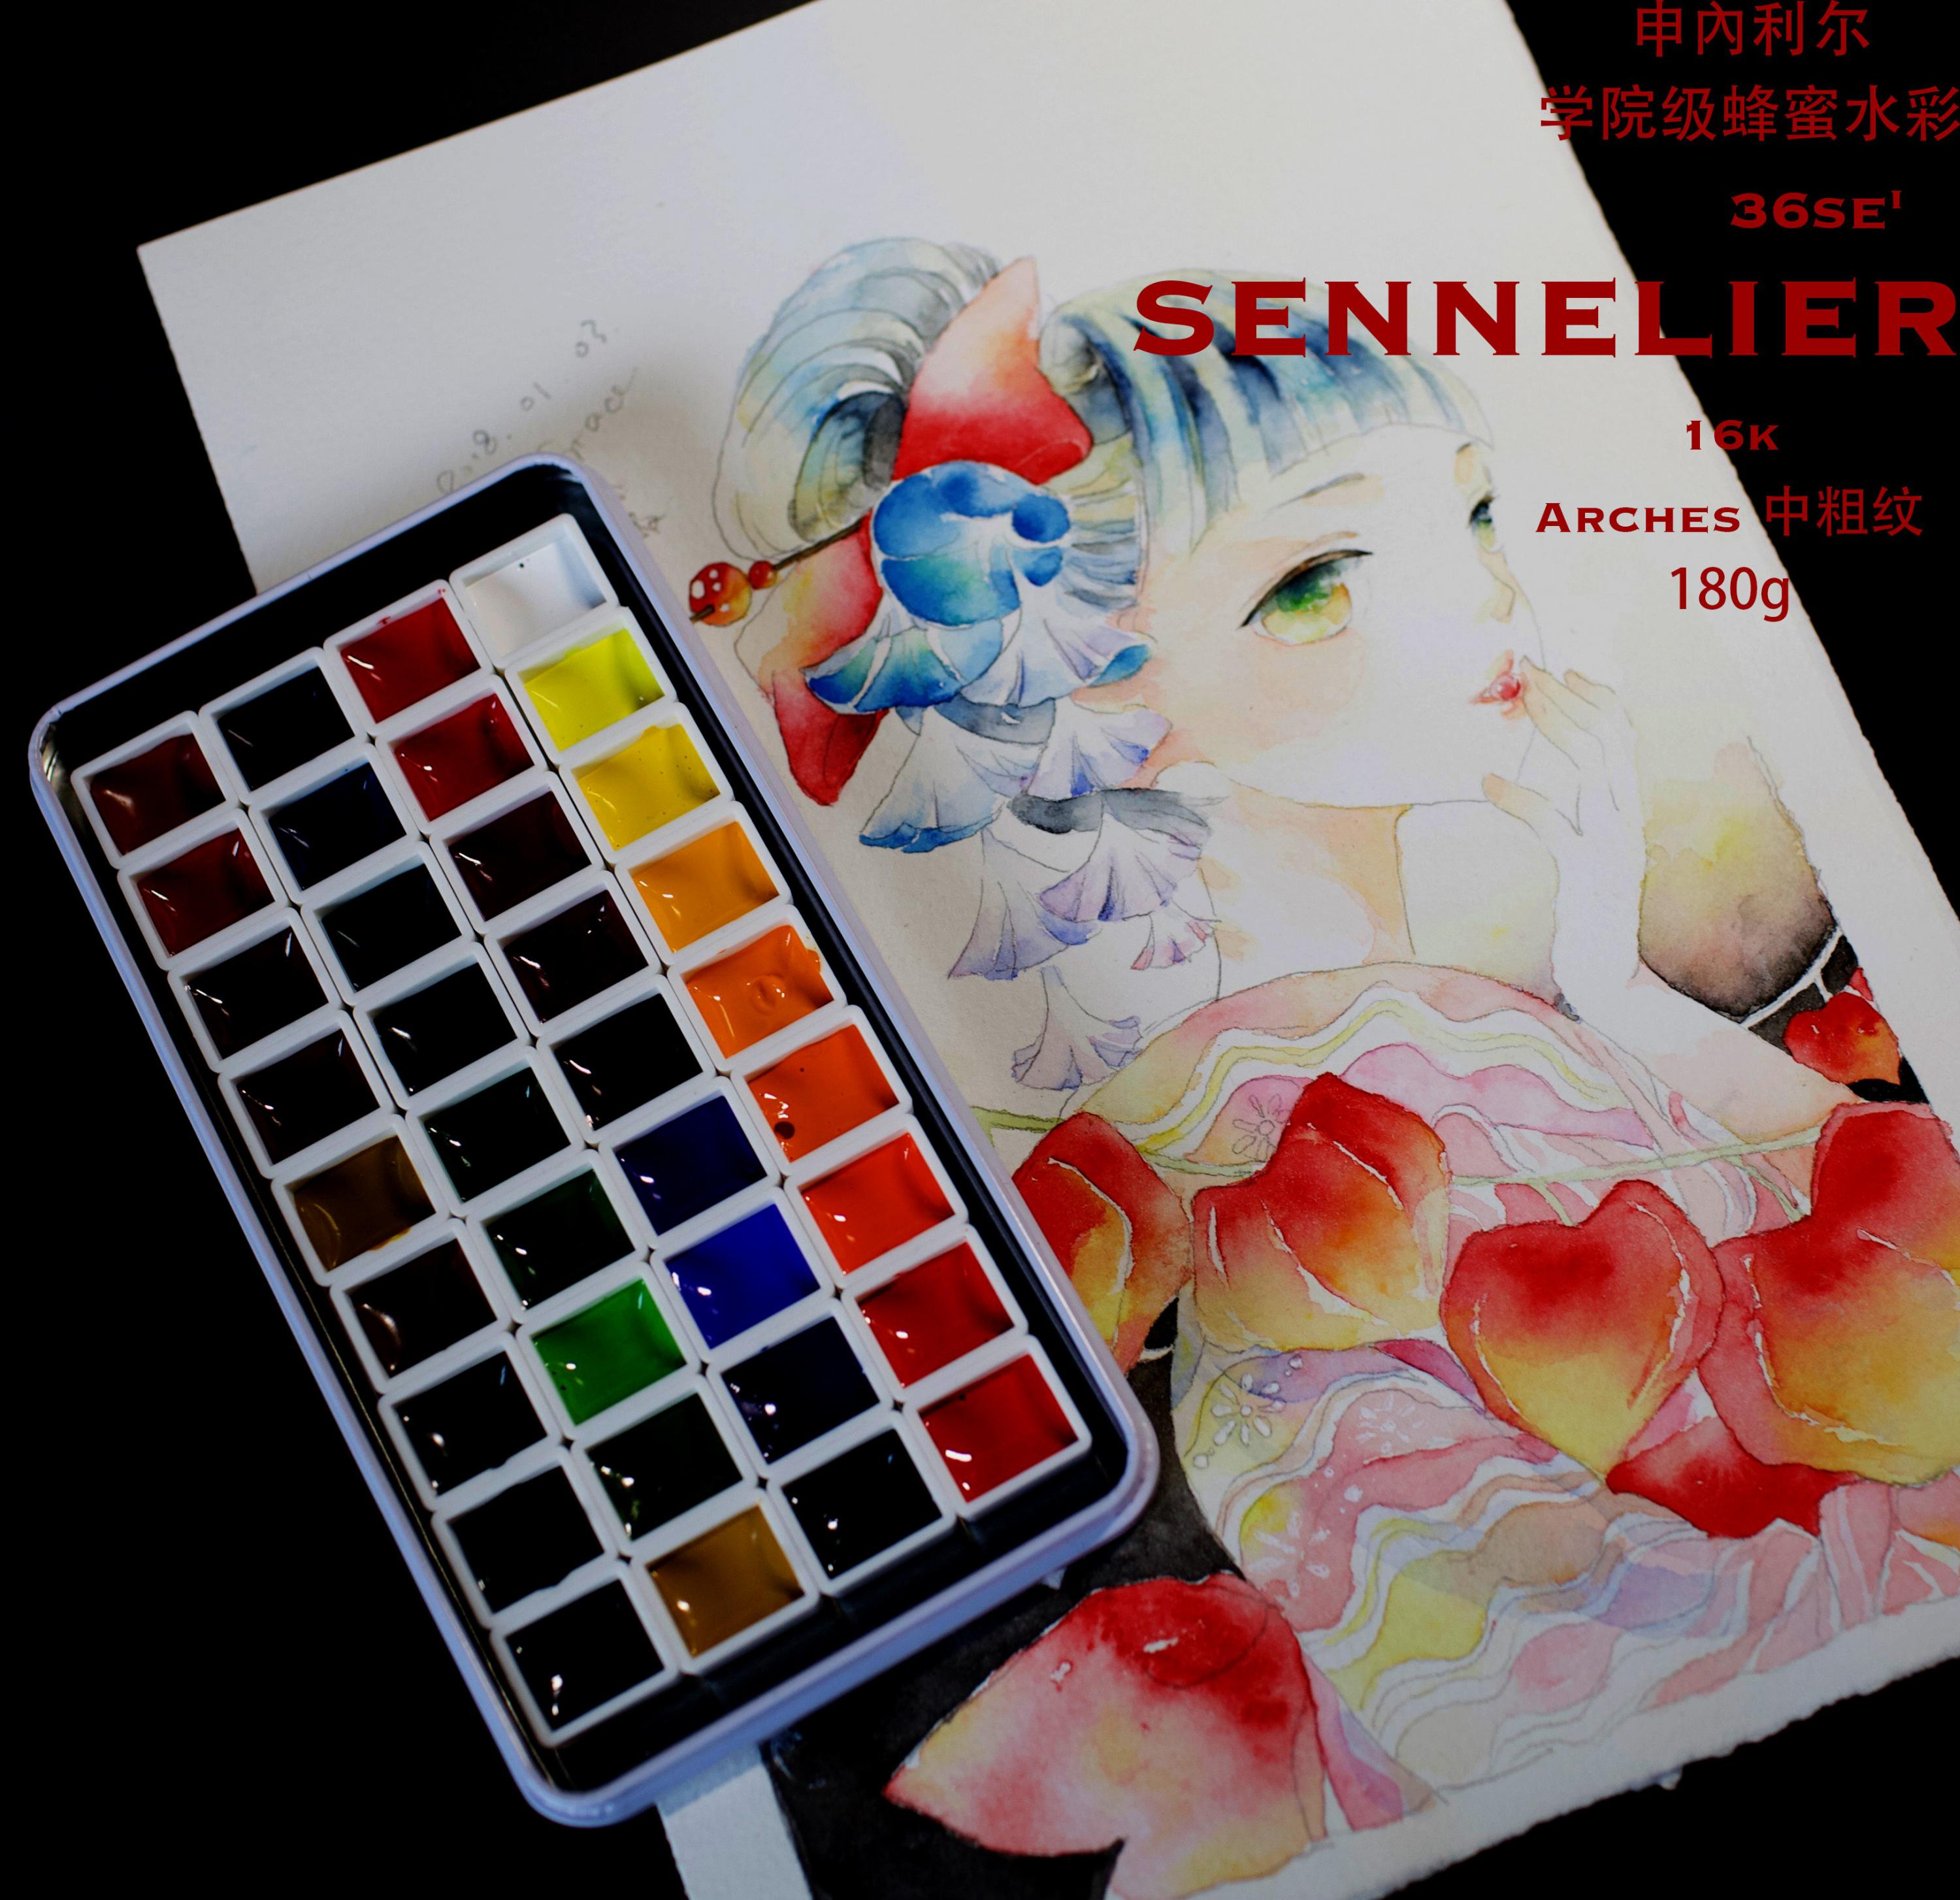 France Sennelier Student Class Watercolor Pigment Academy 36 Colors Dispensing Sub Package Solid Watercolor AquarelaFrance Sennelier Student Class Watercolor Pigment Academy 36 Colors Dispensing Sub Package Solid Watercolor Aquarela